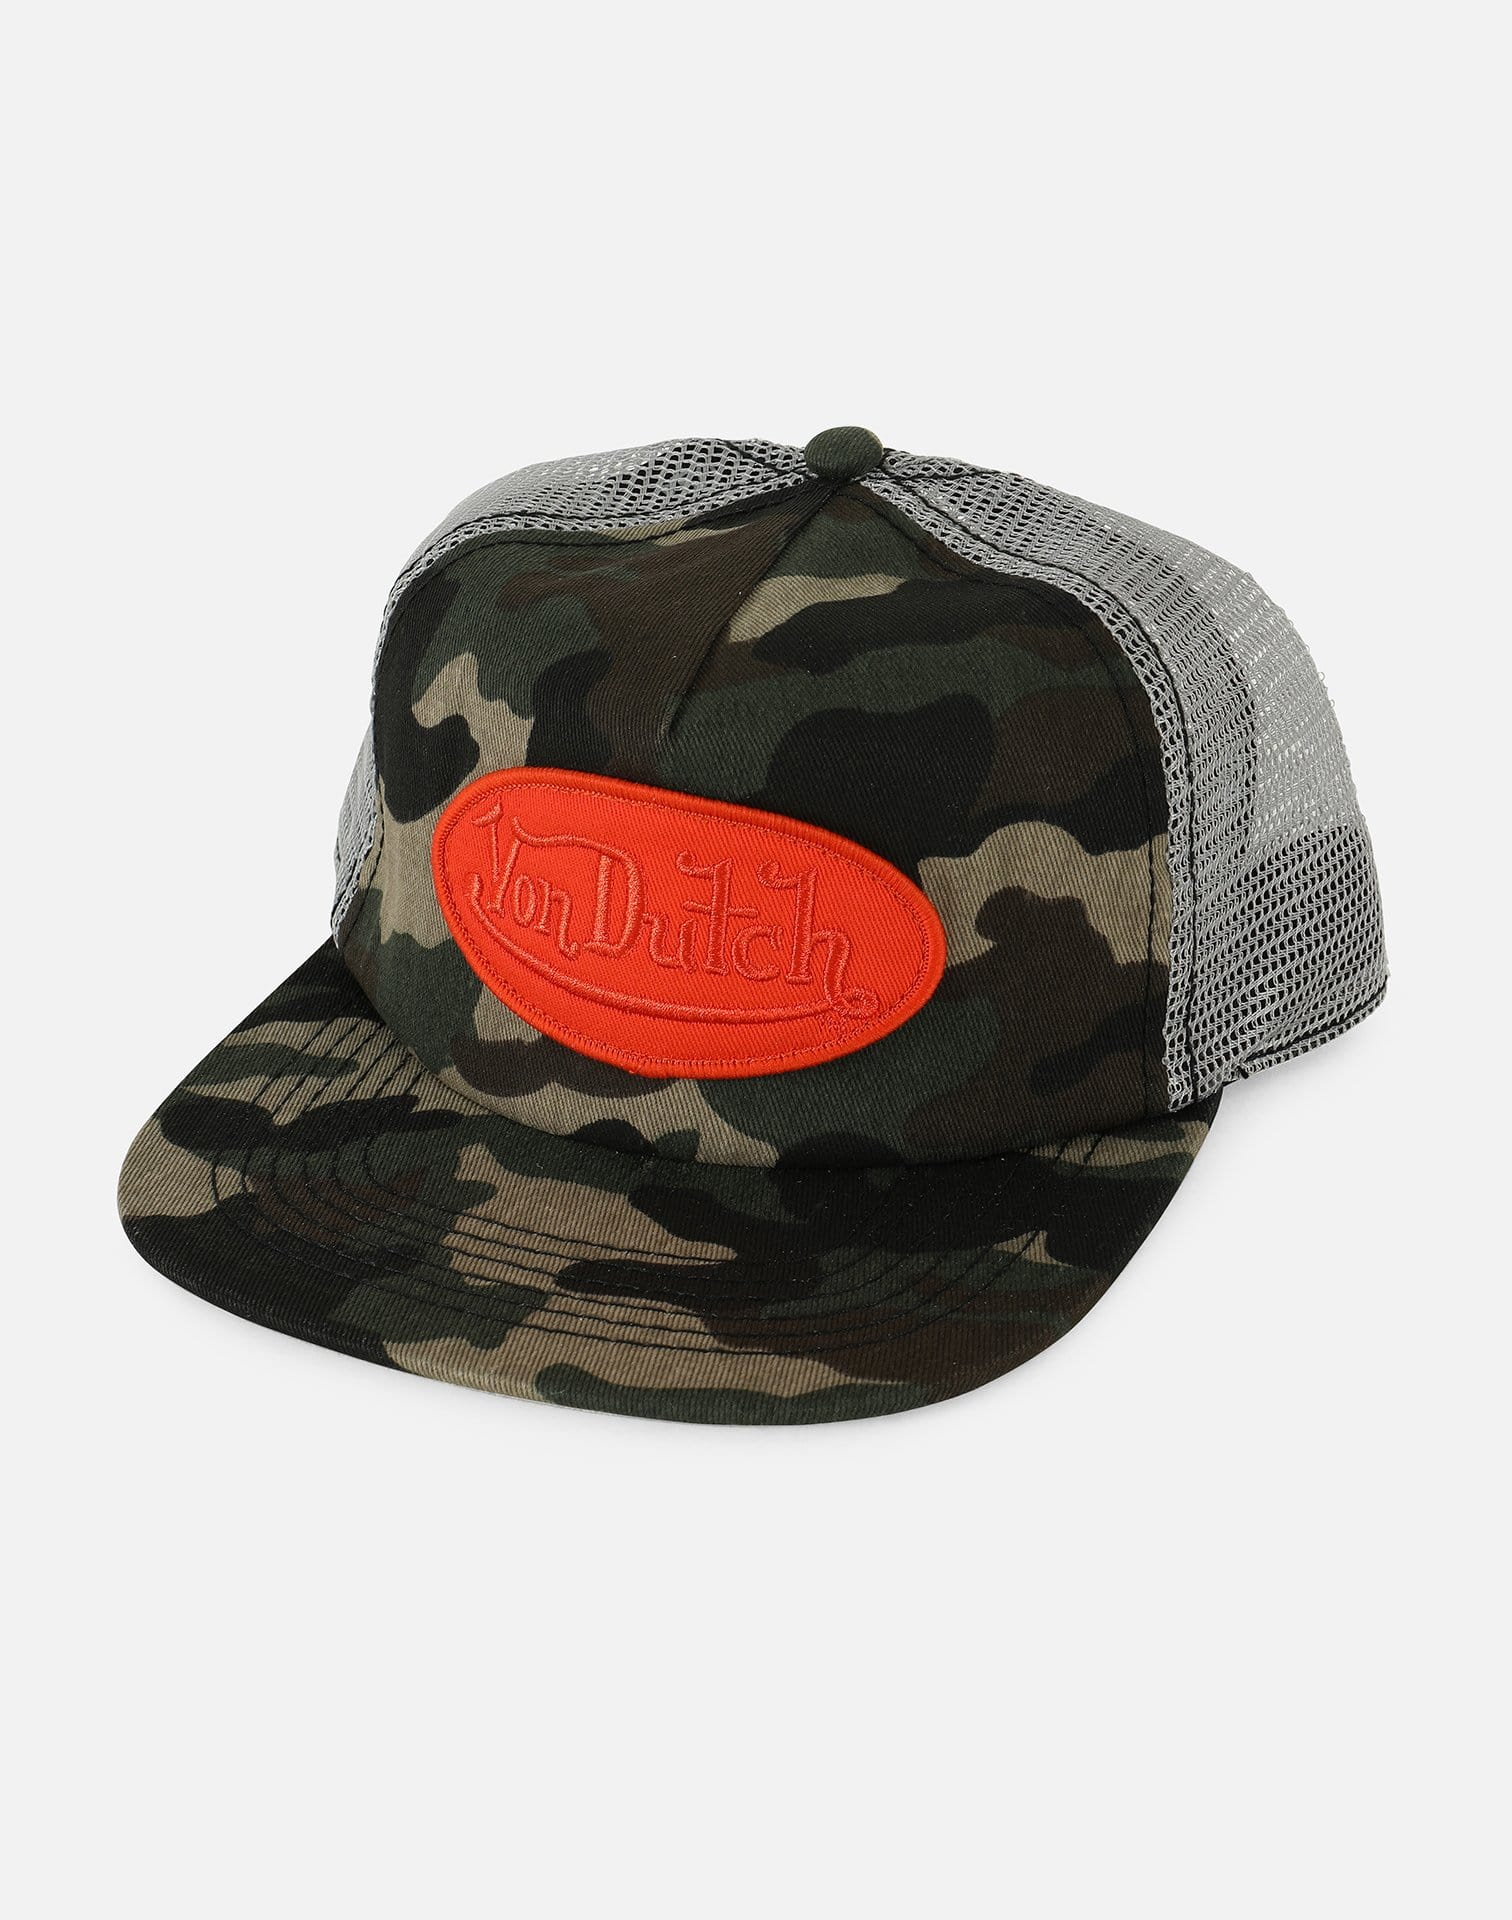 Von Dutch Trucker Snapback Hat